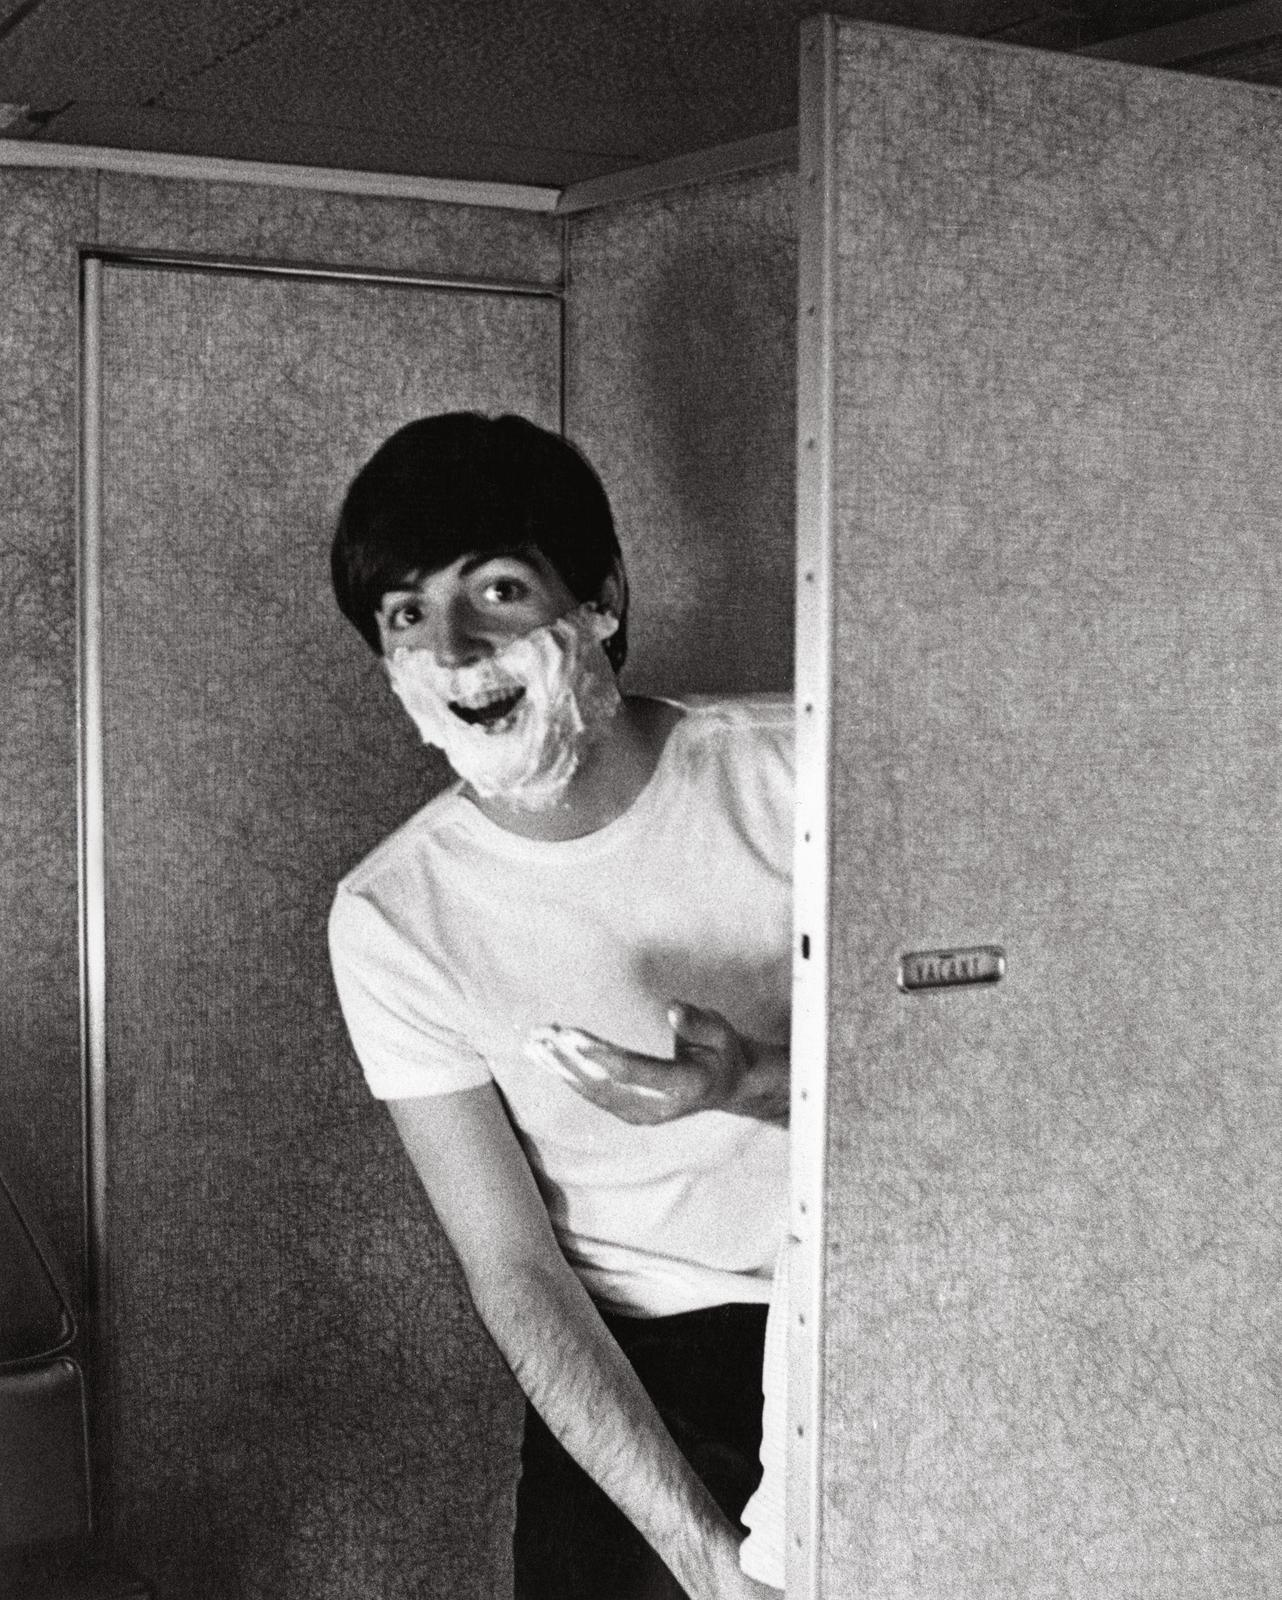 Preparing for the Beatles' first visit to New York: Paul Shave.  (February 7, 1964)